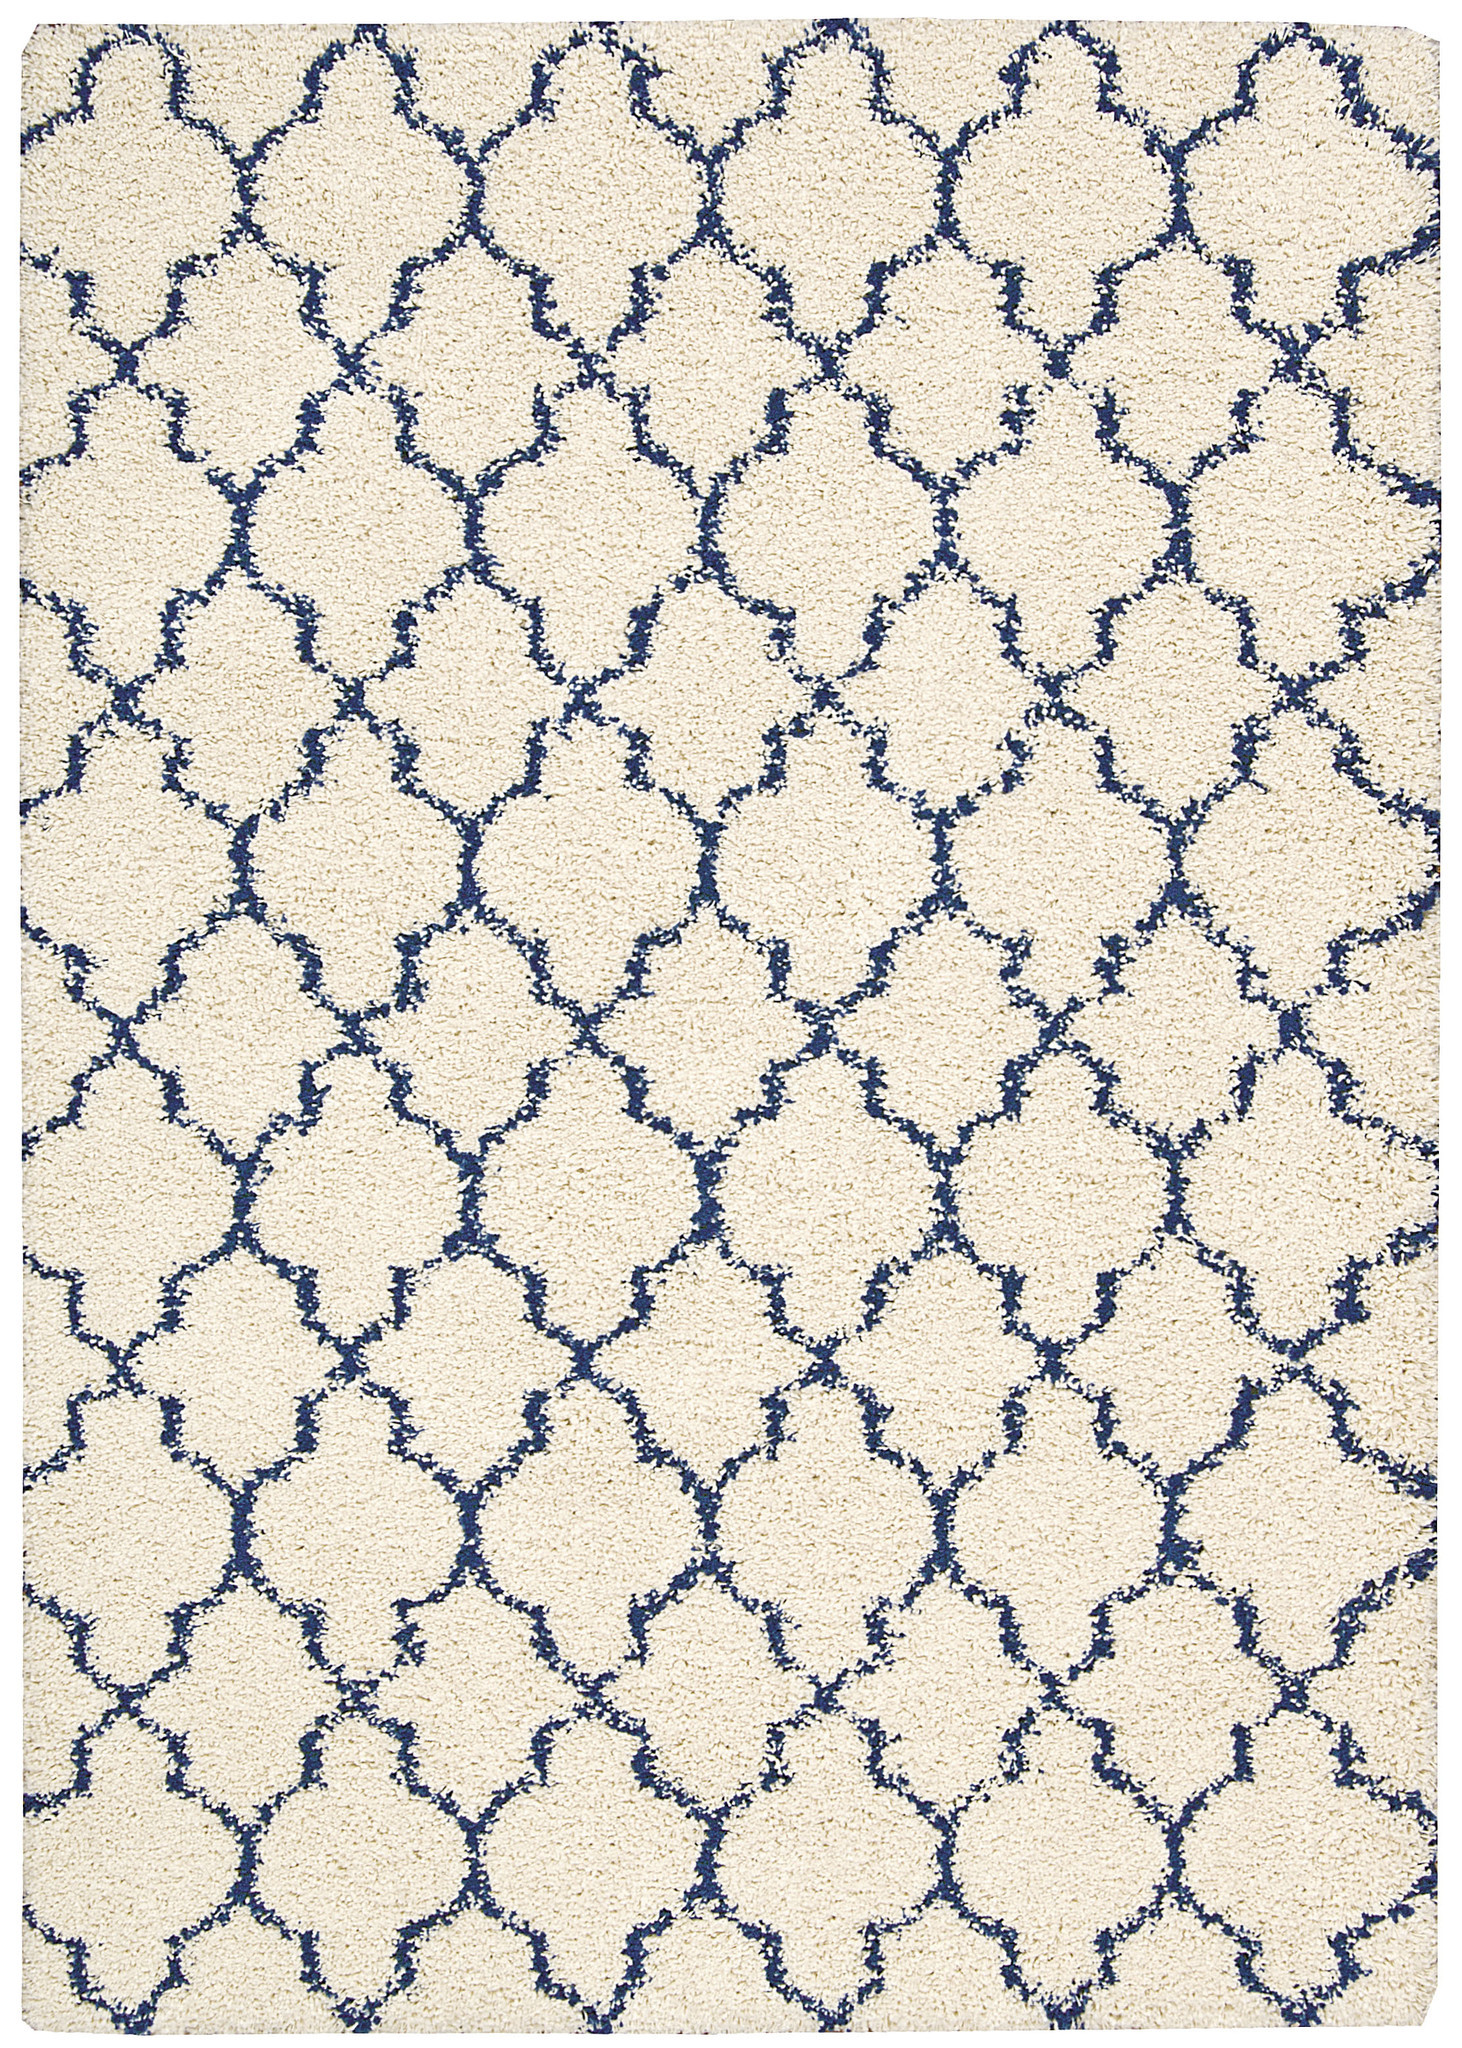 Amore Collection Shag Area Rug in Ivory and Blue design by nourison rugs for floor decor ideas